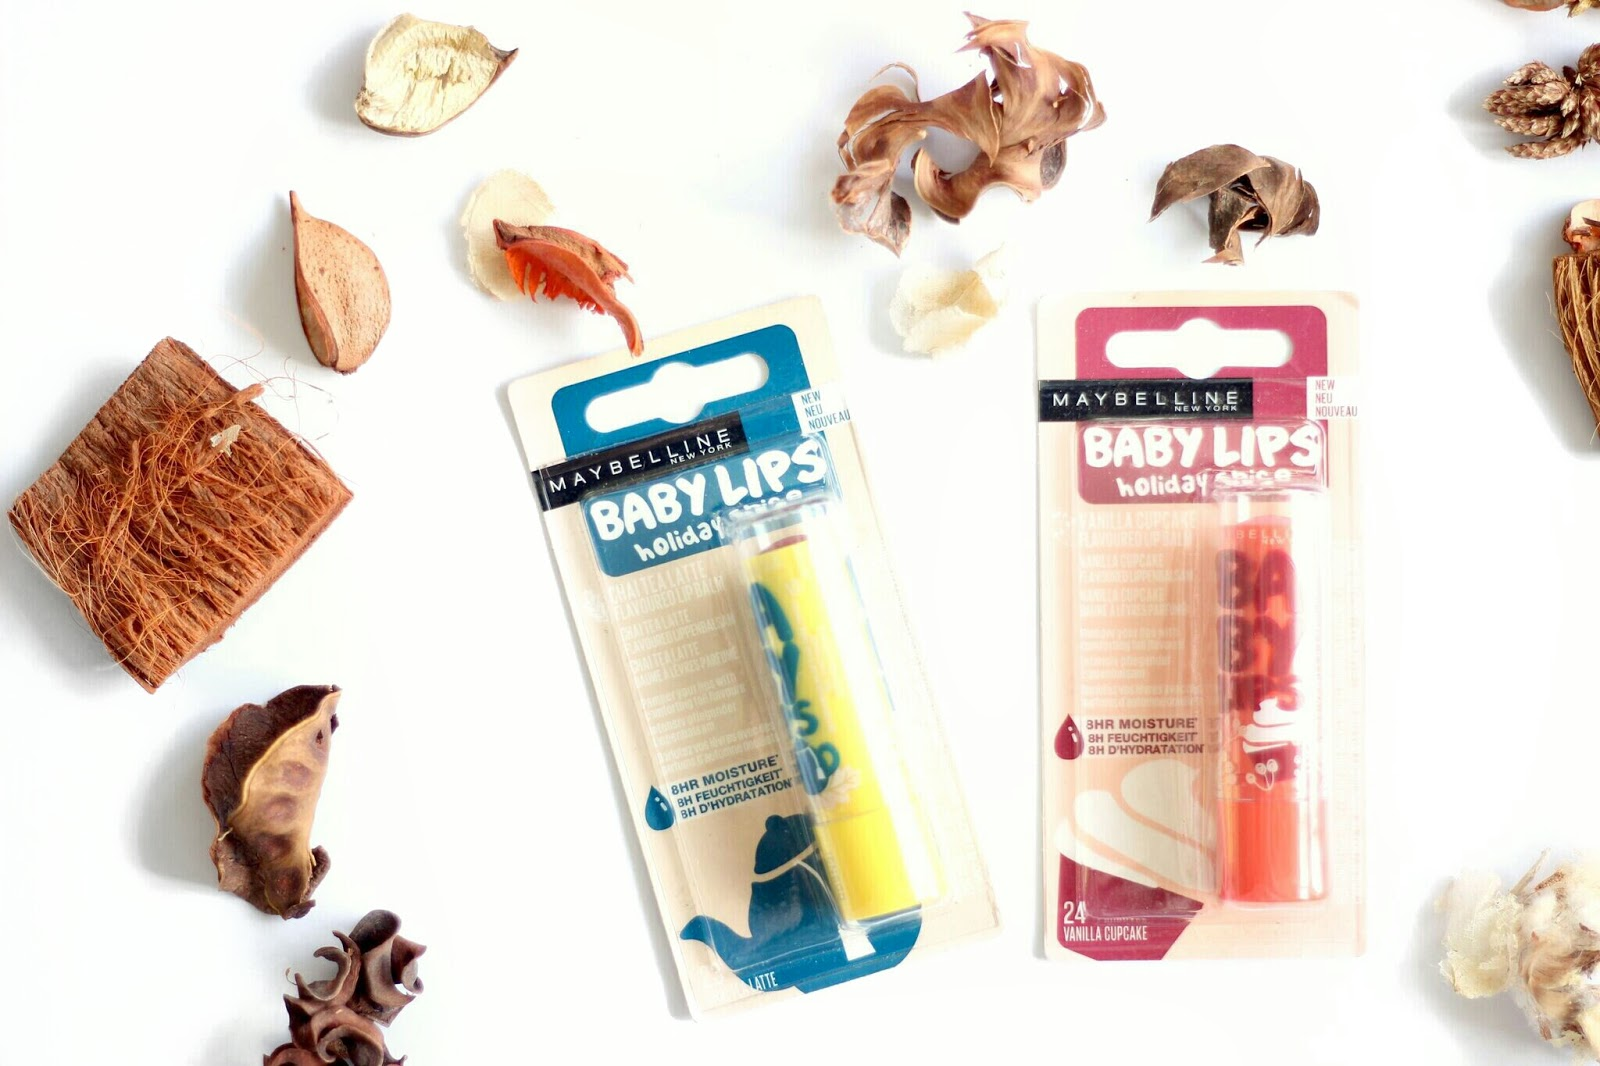 Maybelline Baby Lips Holiday Spice Collection